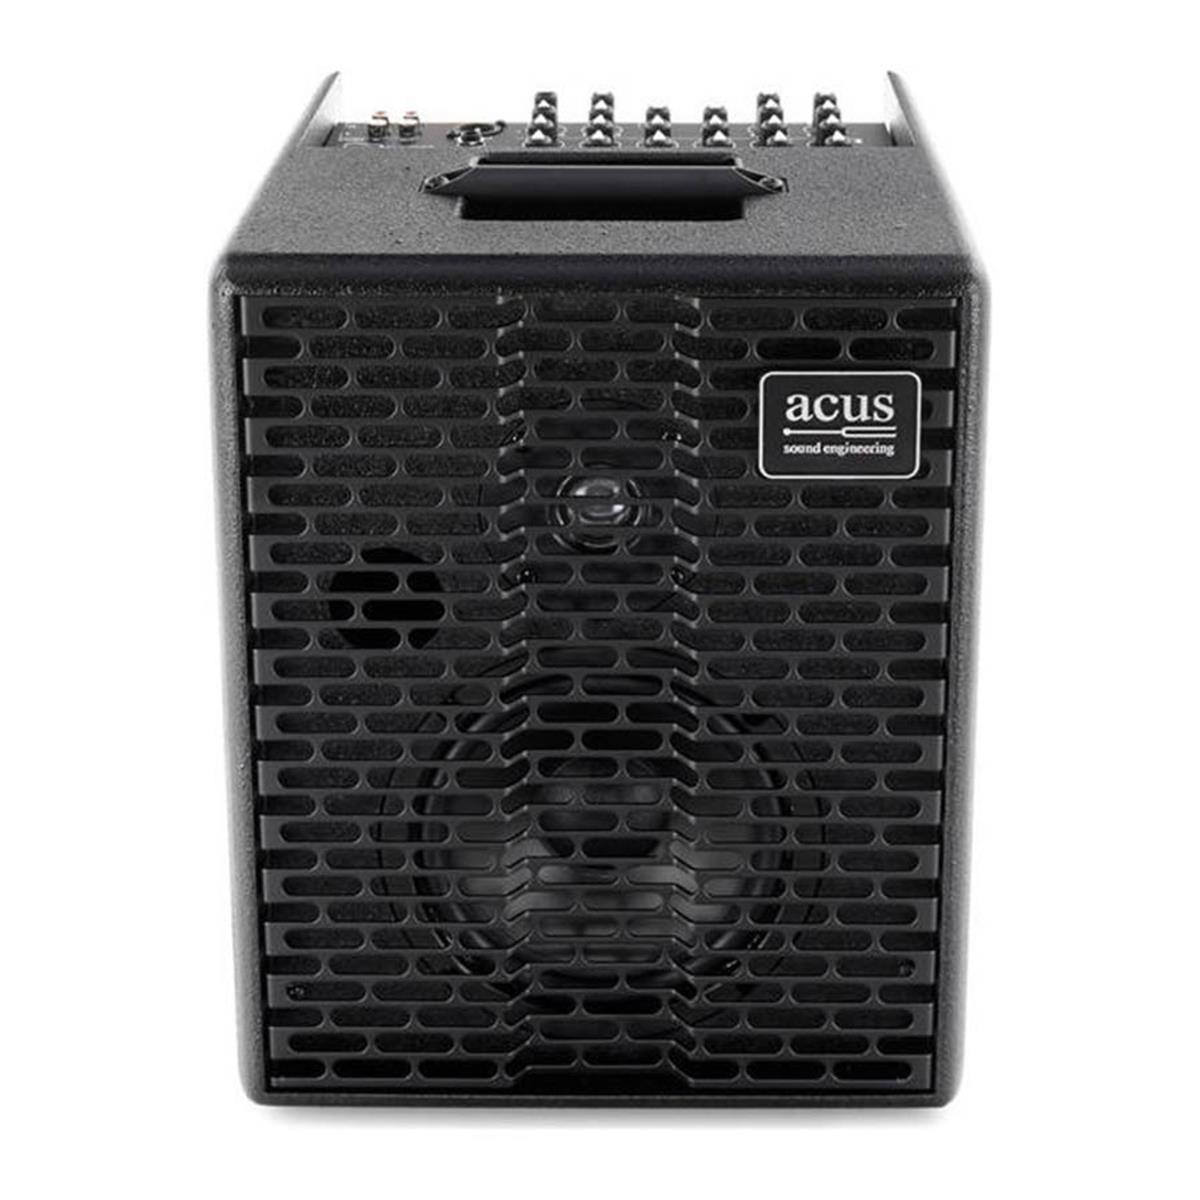 ACUS ONEFORSTRINGS ONEFOR 6T B BLACK 100 W COMBO ACUSTICA